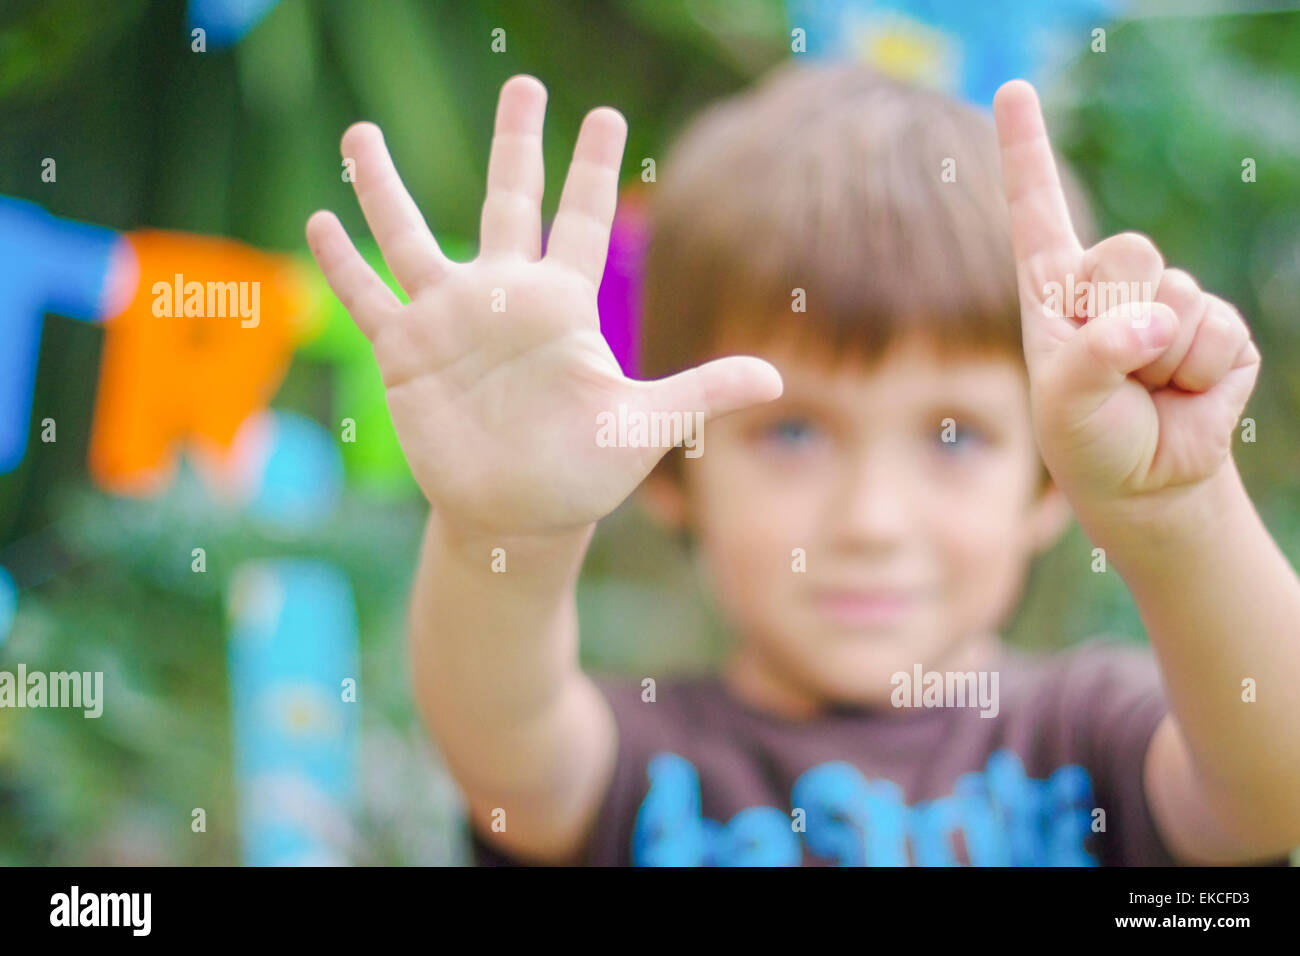 Birthday boy showing the number six with his hands - Stock Image